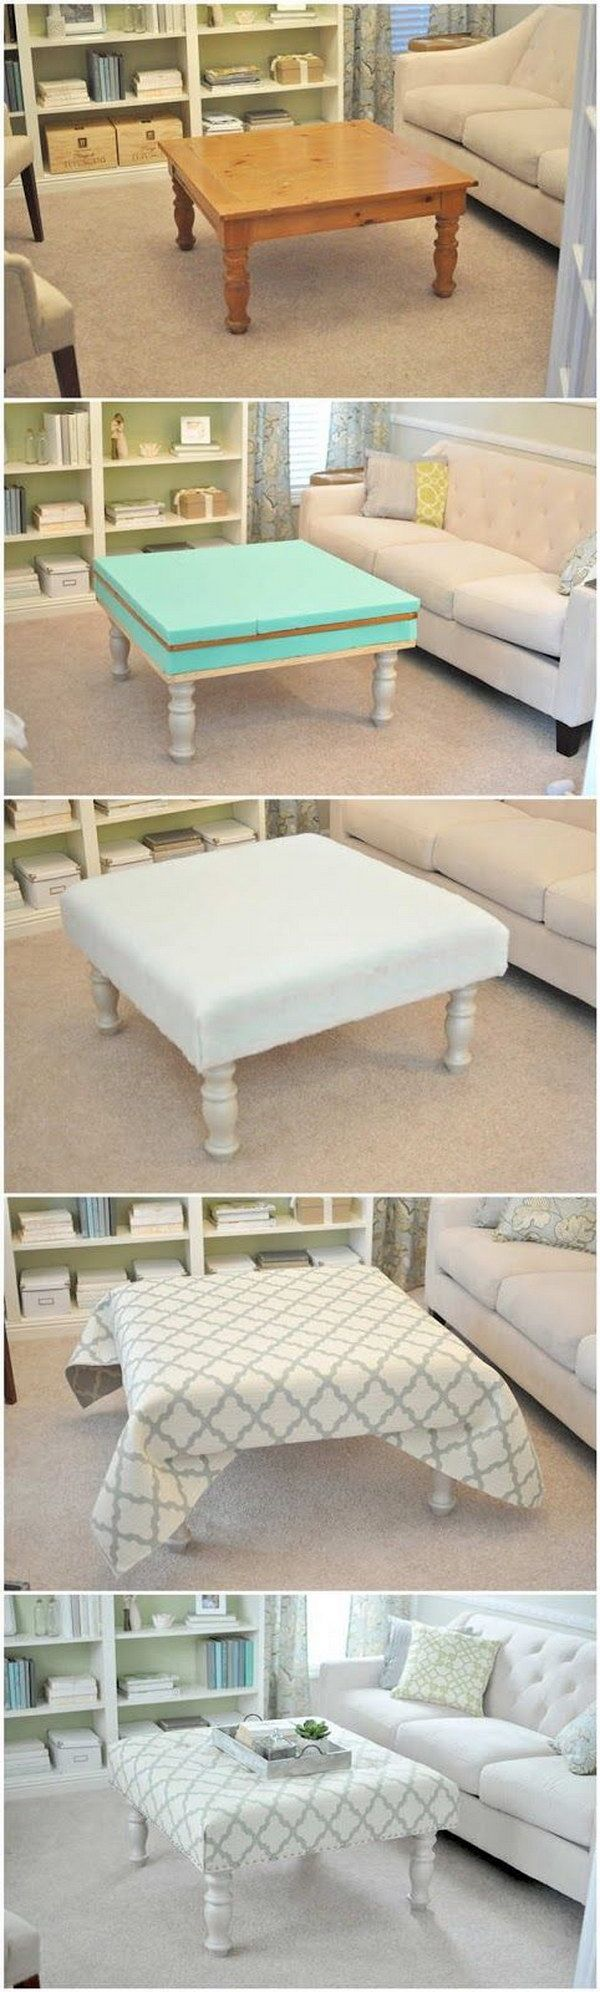 DIY Upholstered Ottoman From Coffee Table.